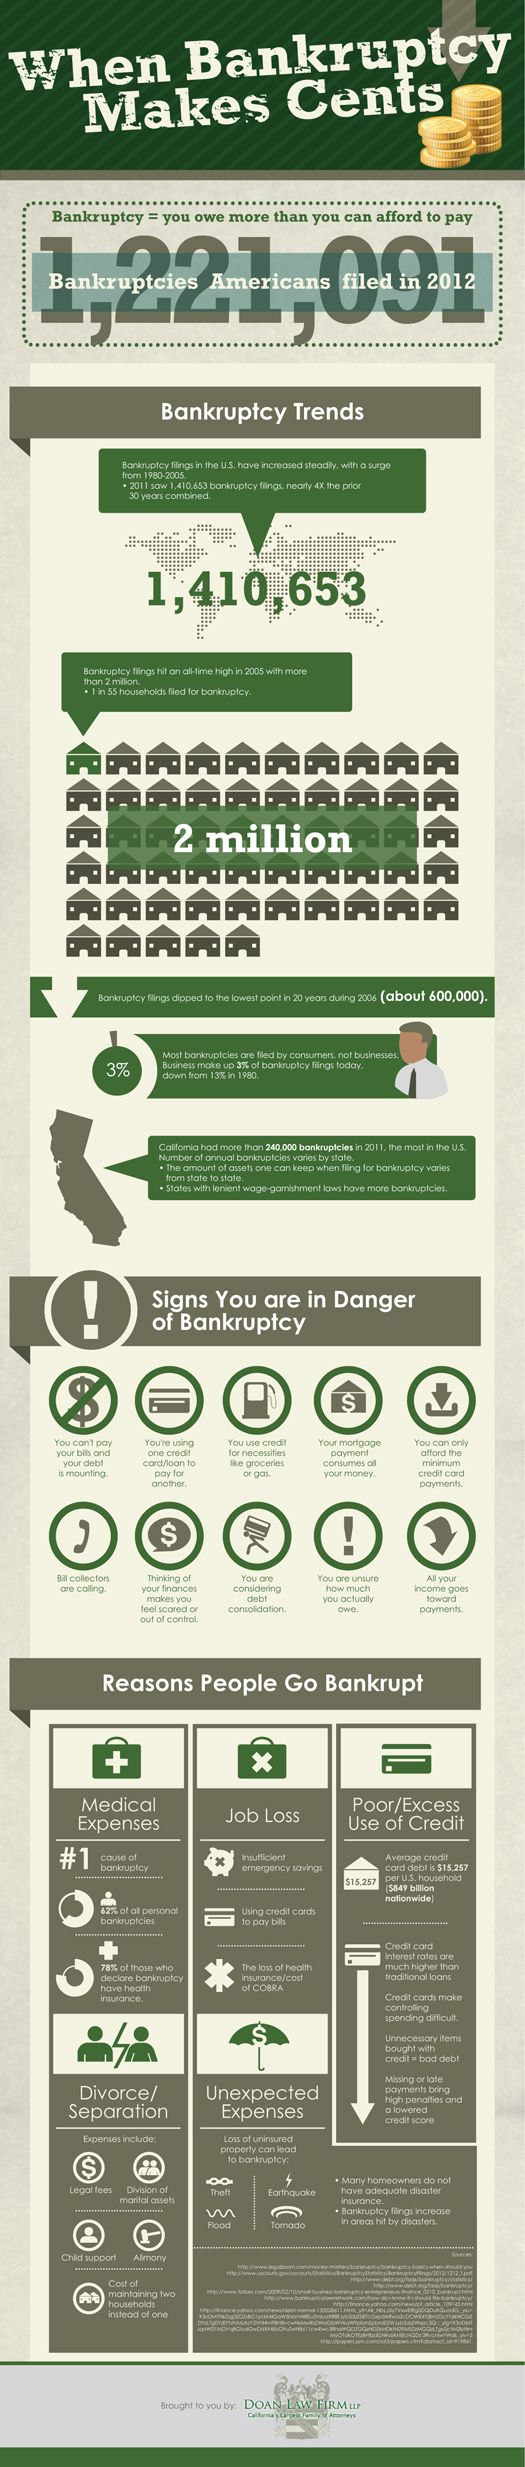 When Bankruptcy Makes Cents Infographic Bankruptcy Infographic Medical Jobs